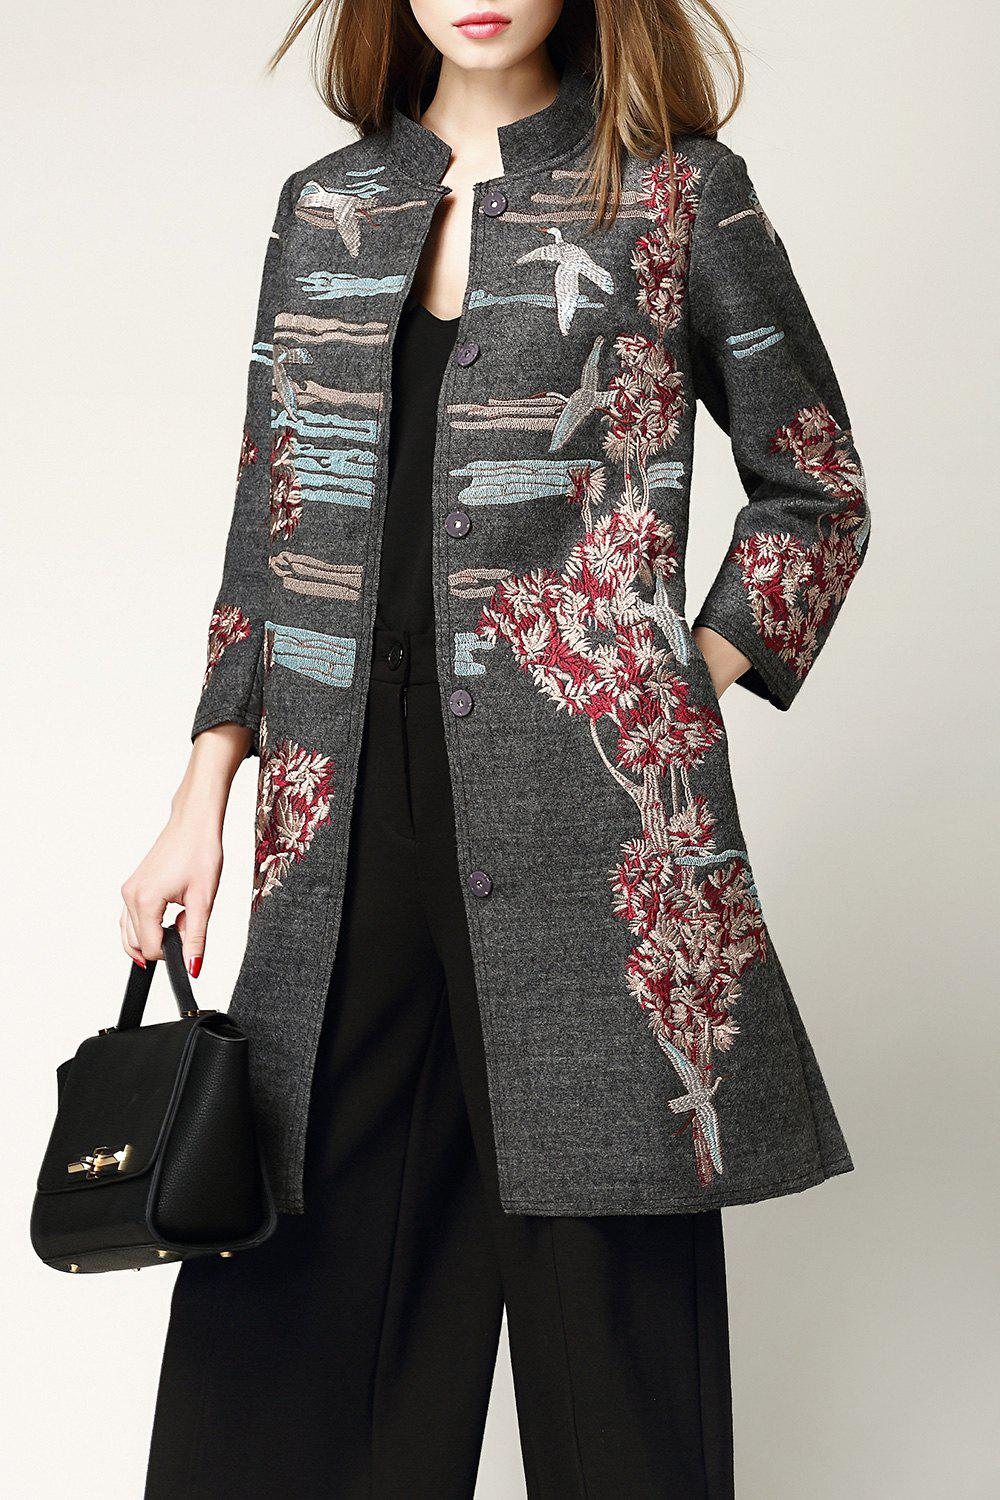 Wool Blend Embroidered Coat - GRAY M